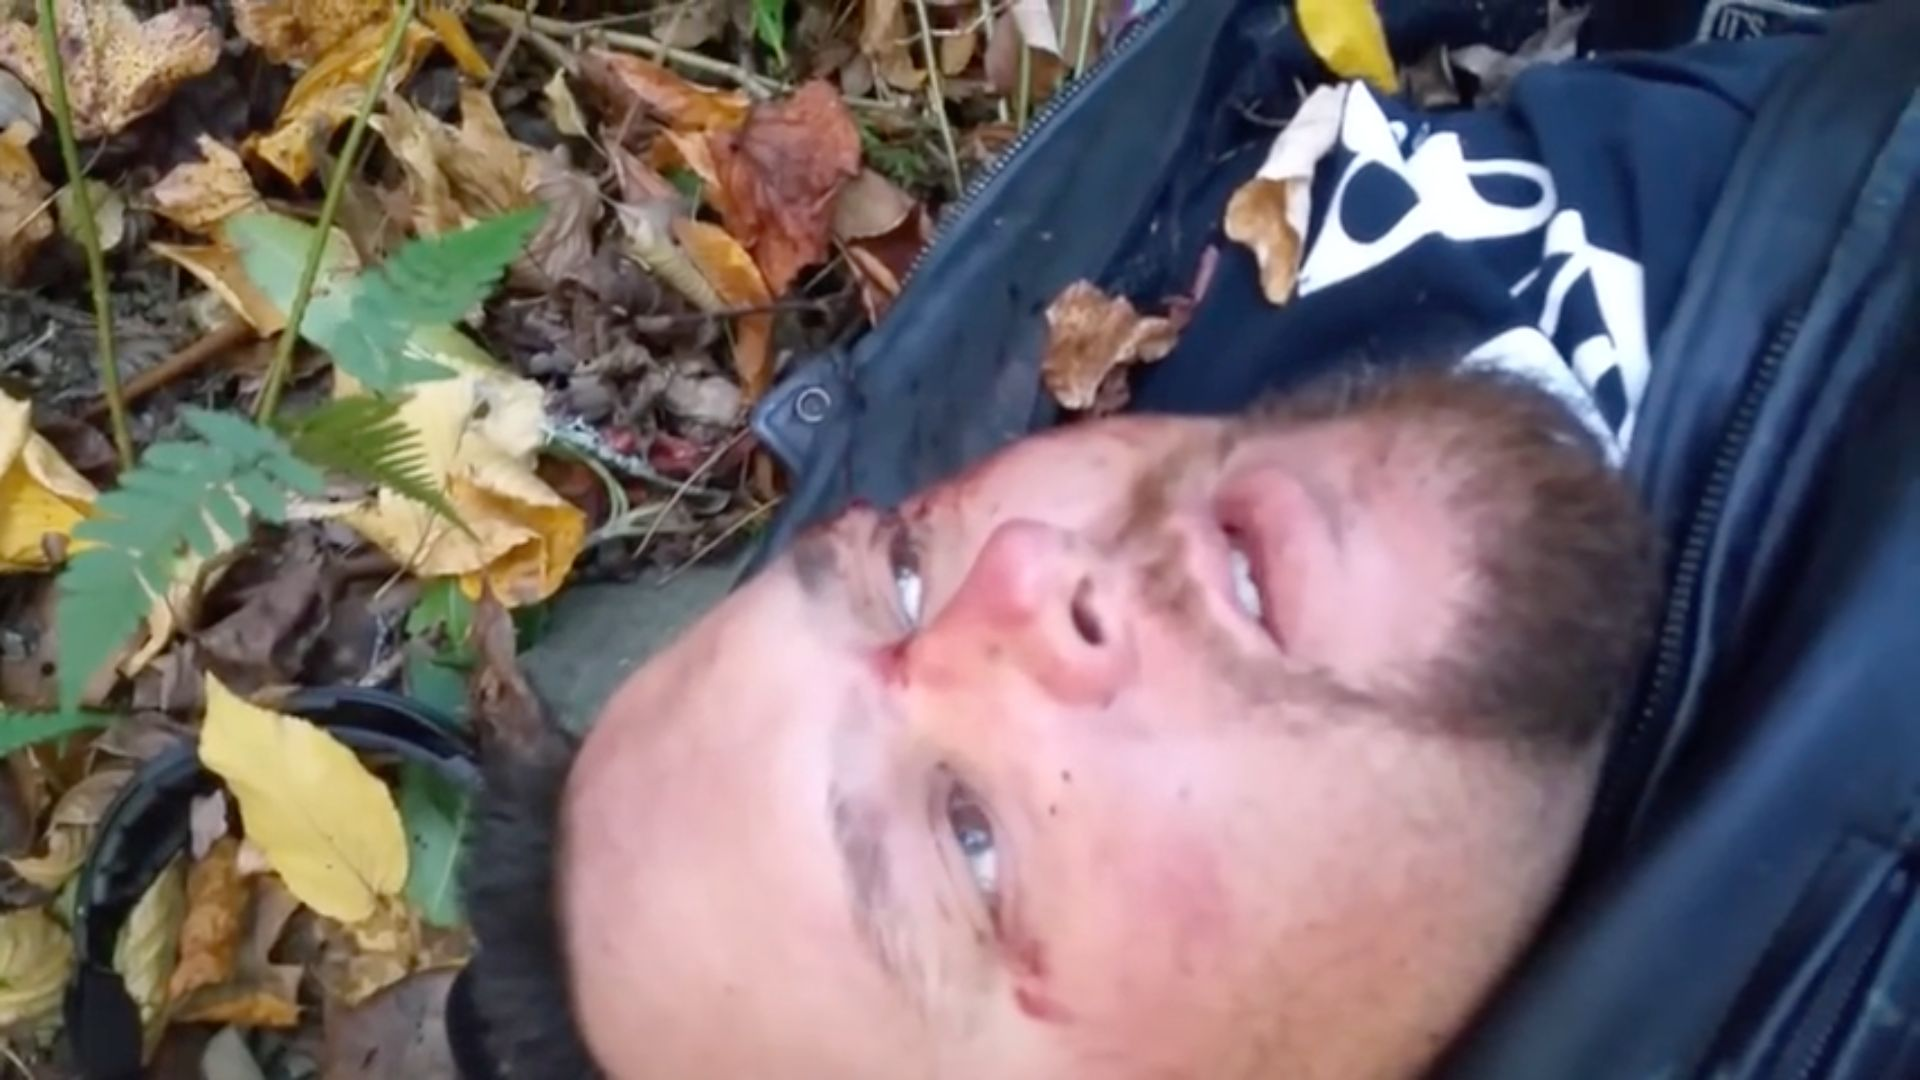 Video released by Kevin Diepenbrock shows the injured motorcyclist delivering what he thought would be his final goodbyes to